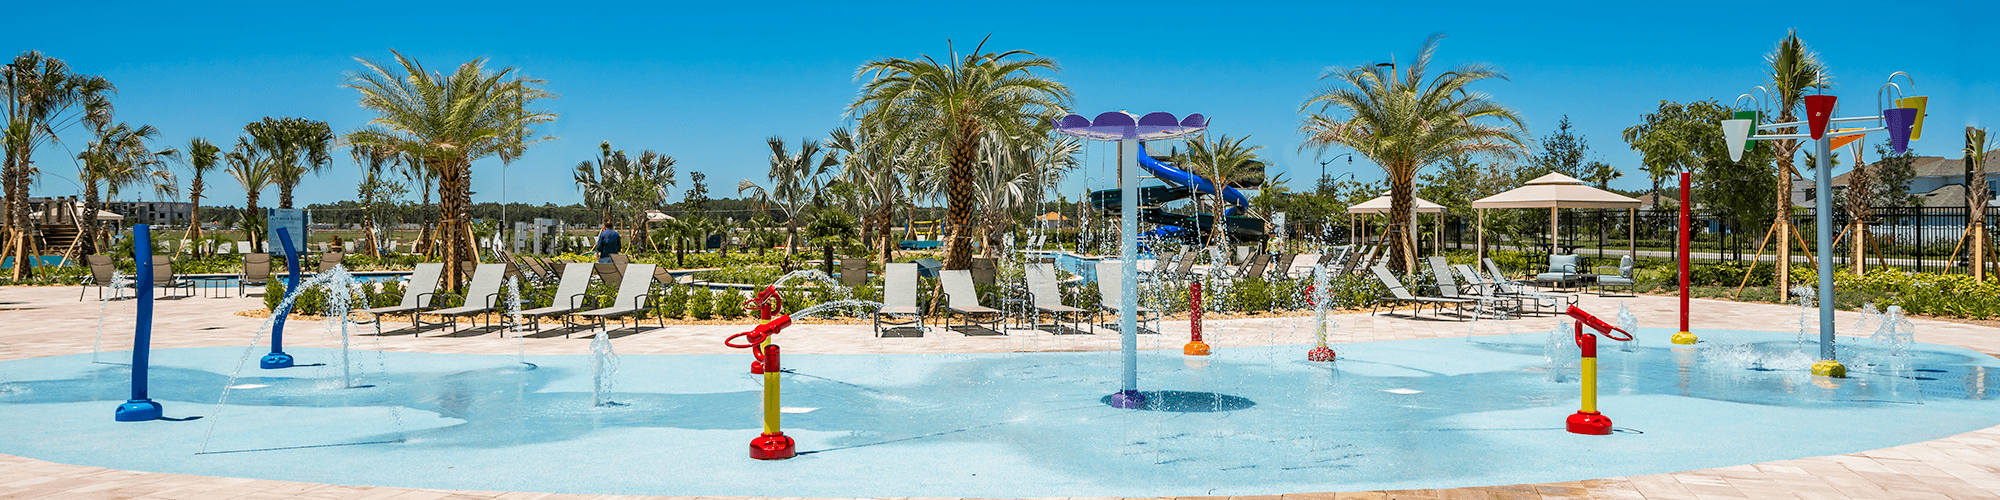 storey-lakes-resort-clubhouse-kids-splash-park